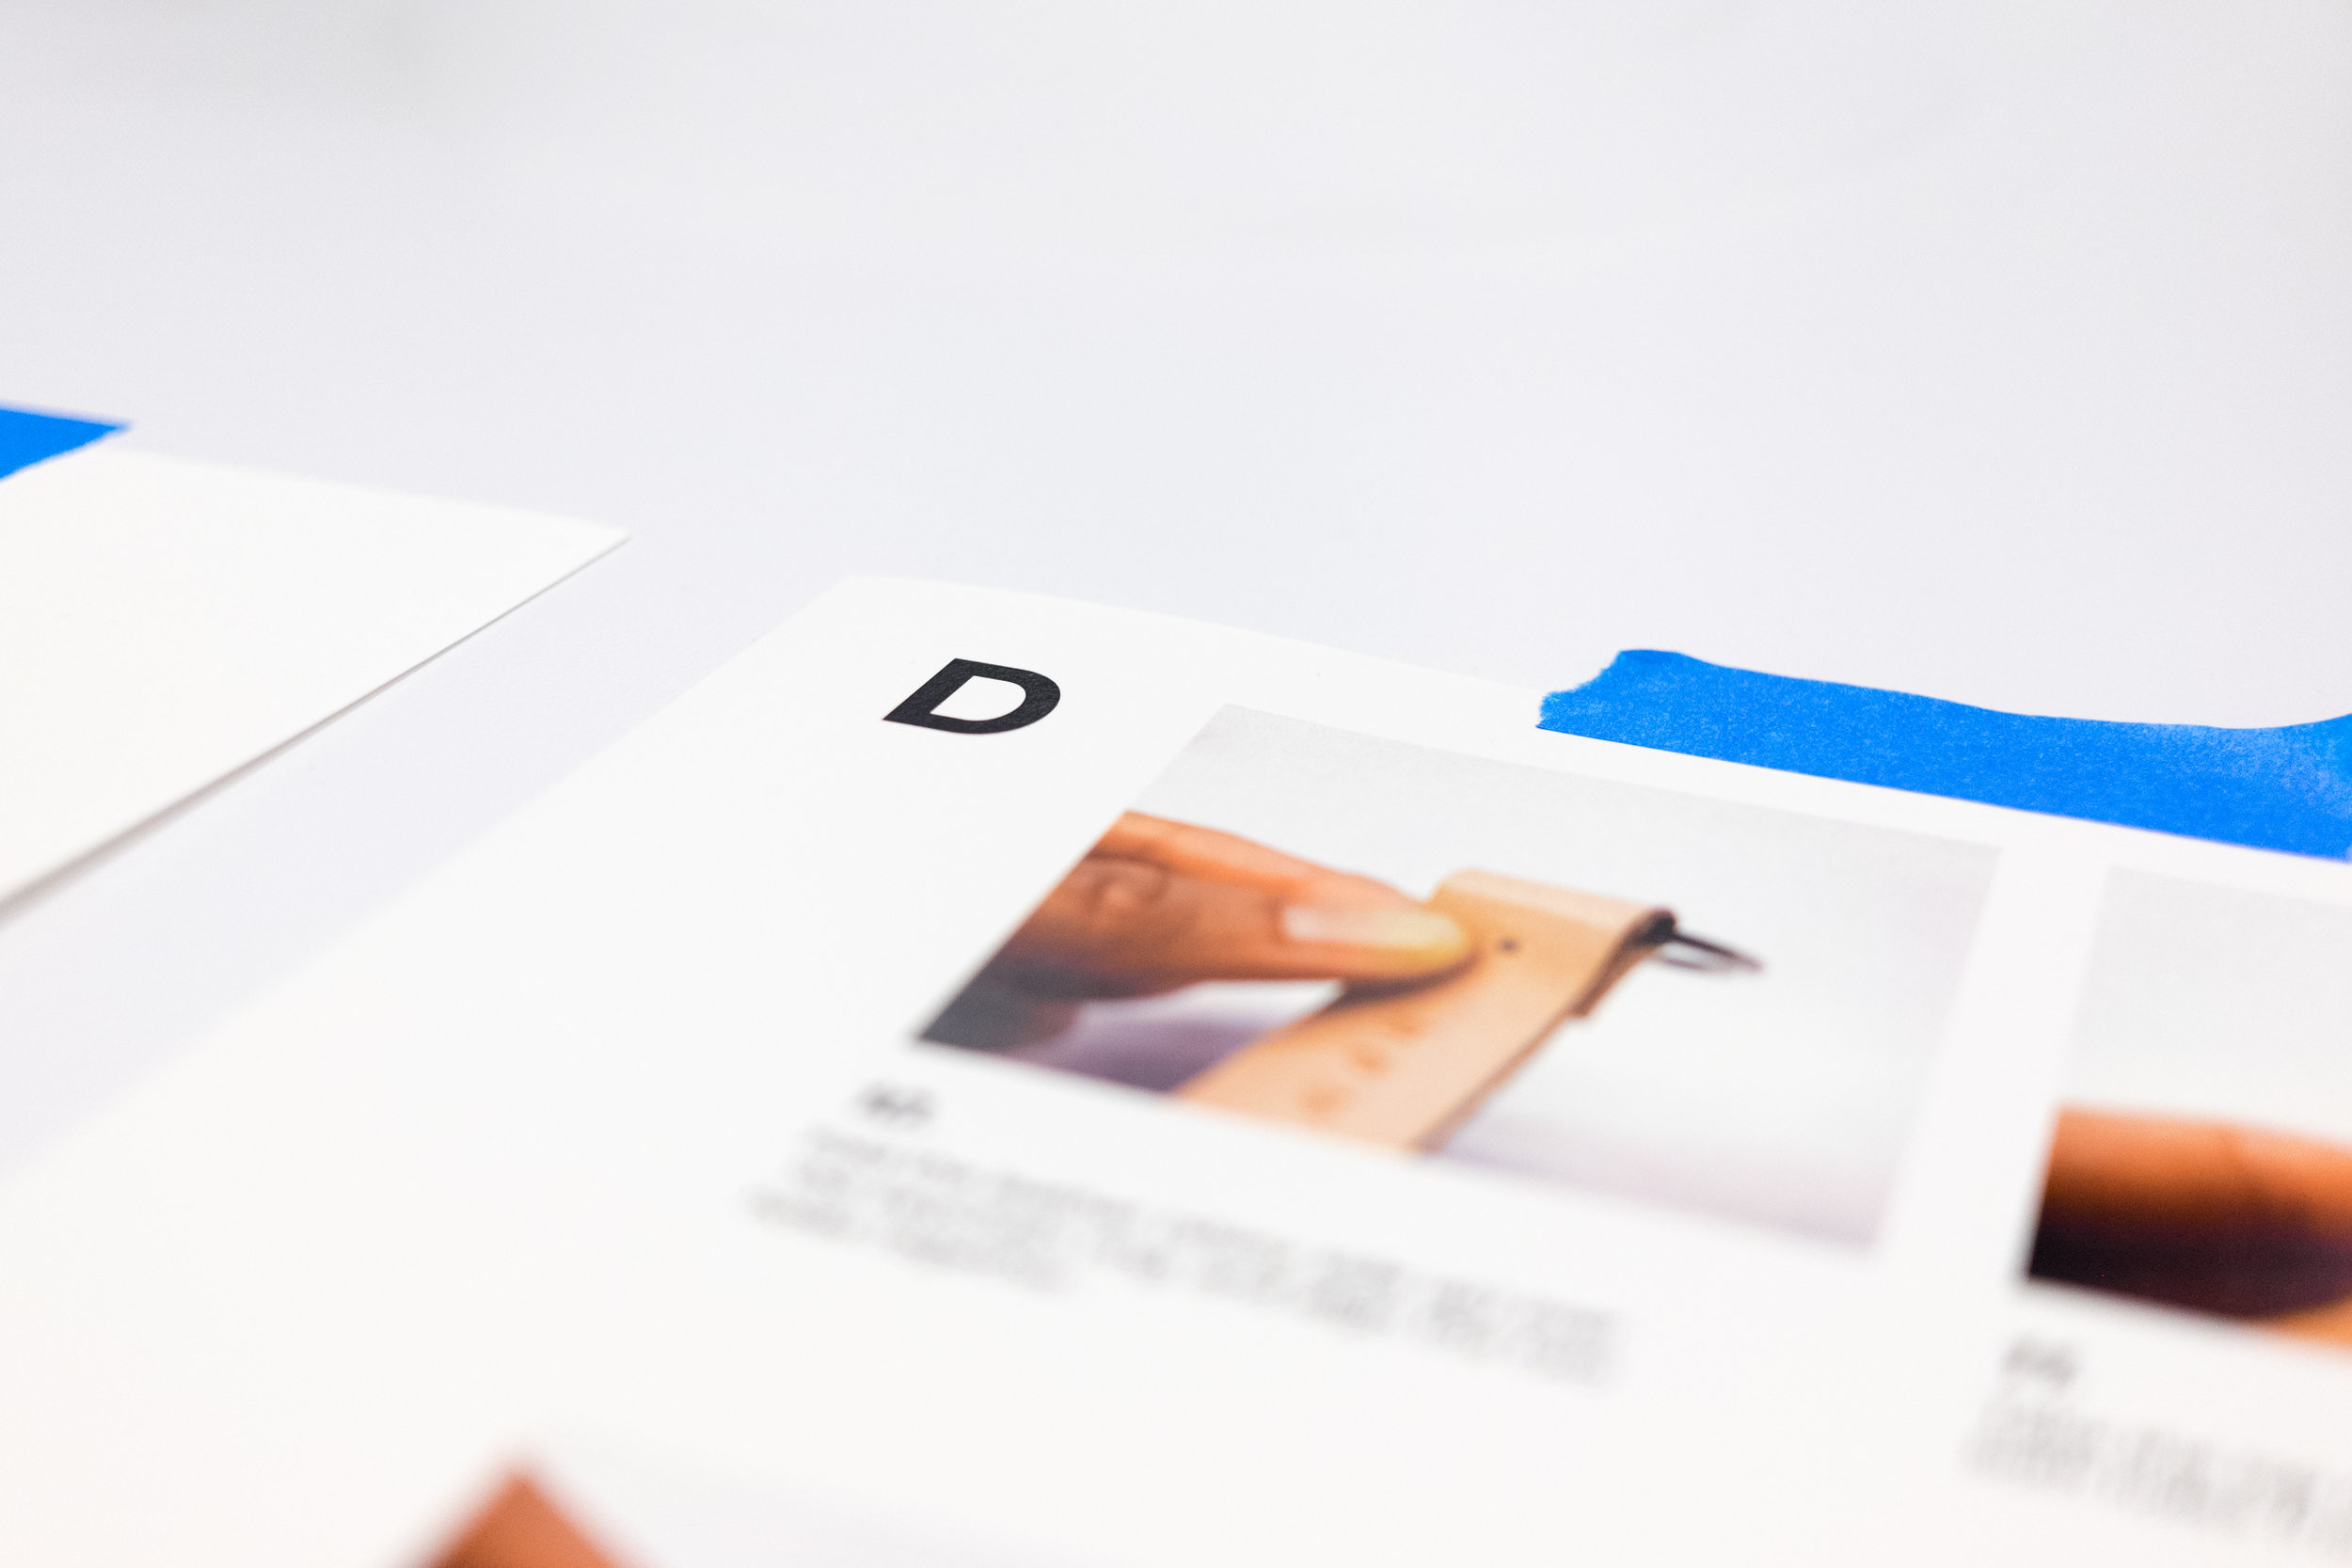 Graphic Design - Our design philosophy is rooted in communicating with clarity and purpose. Whether for print, digital or environments, our designs are bespoke for each touchpoint and channel of choice.